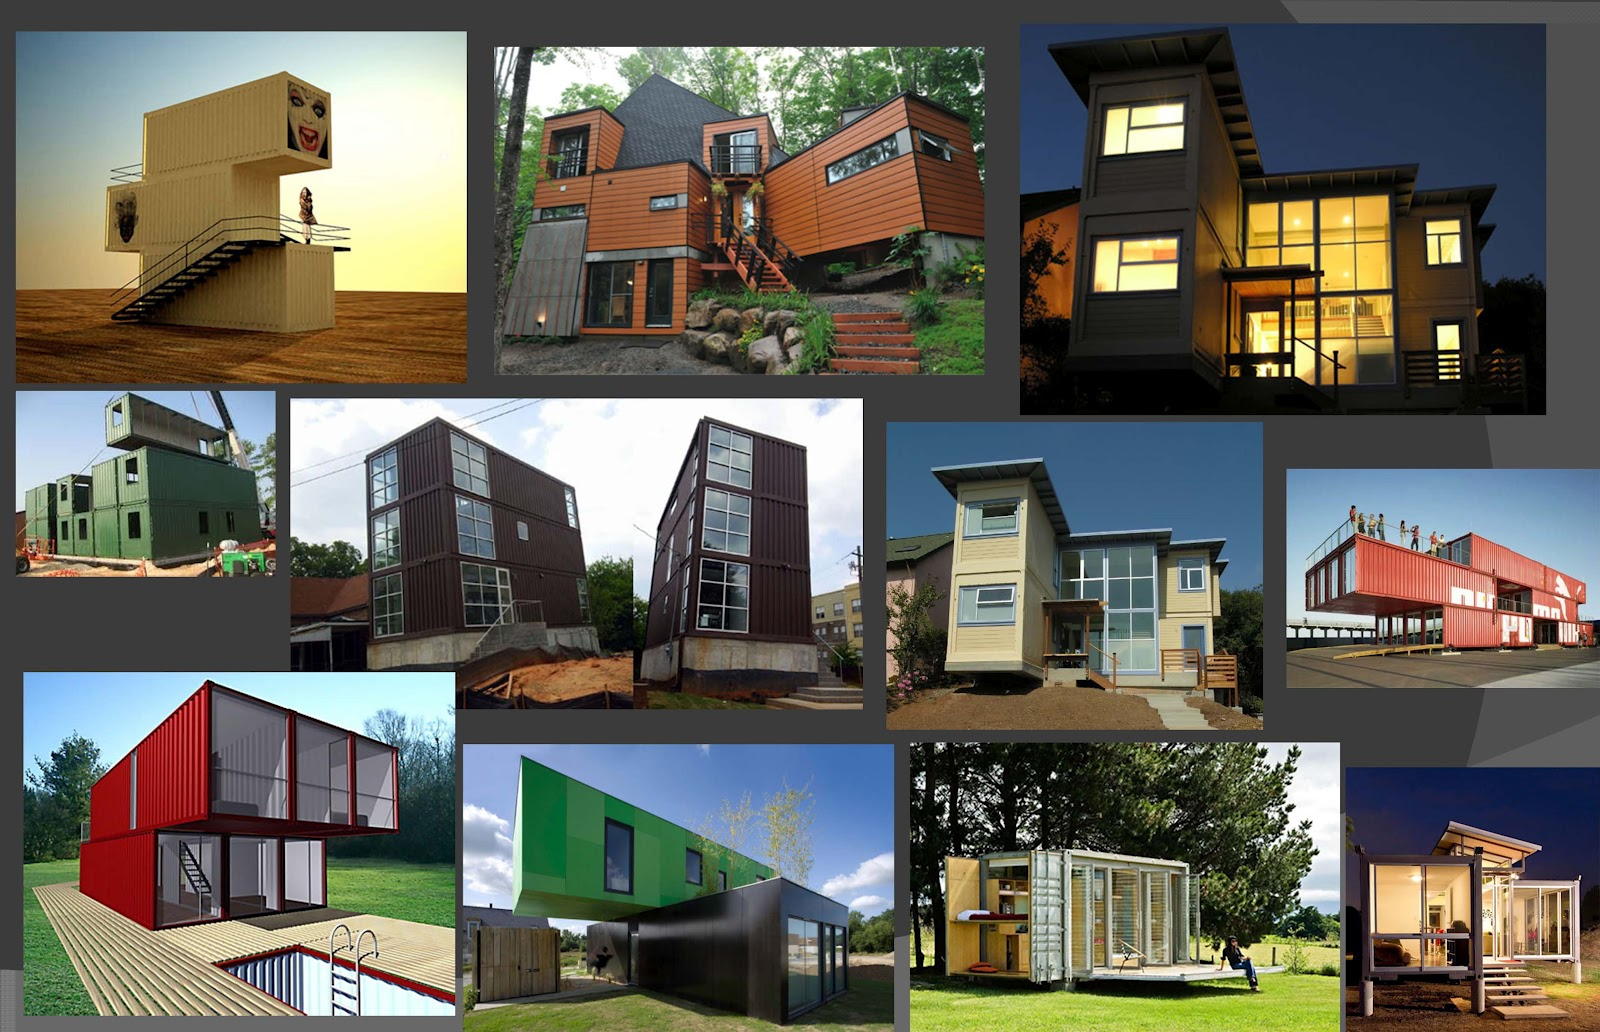 ARCH3511 Design V Fall 2012: Board #1 container home style